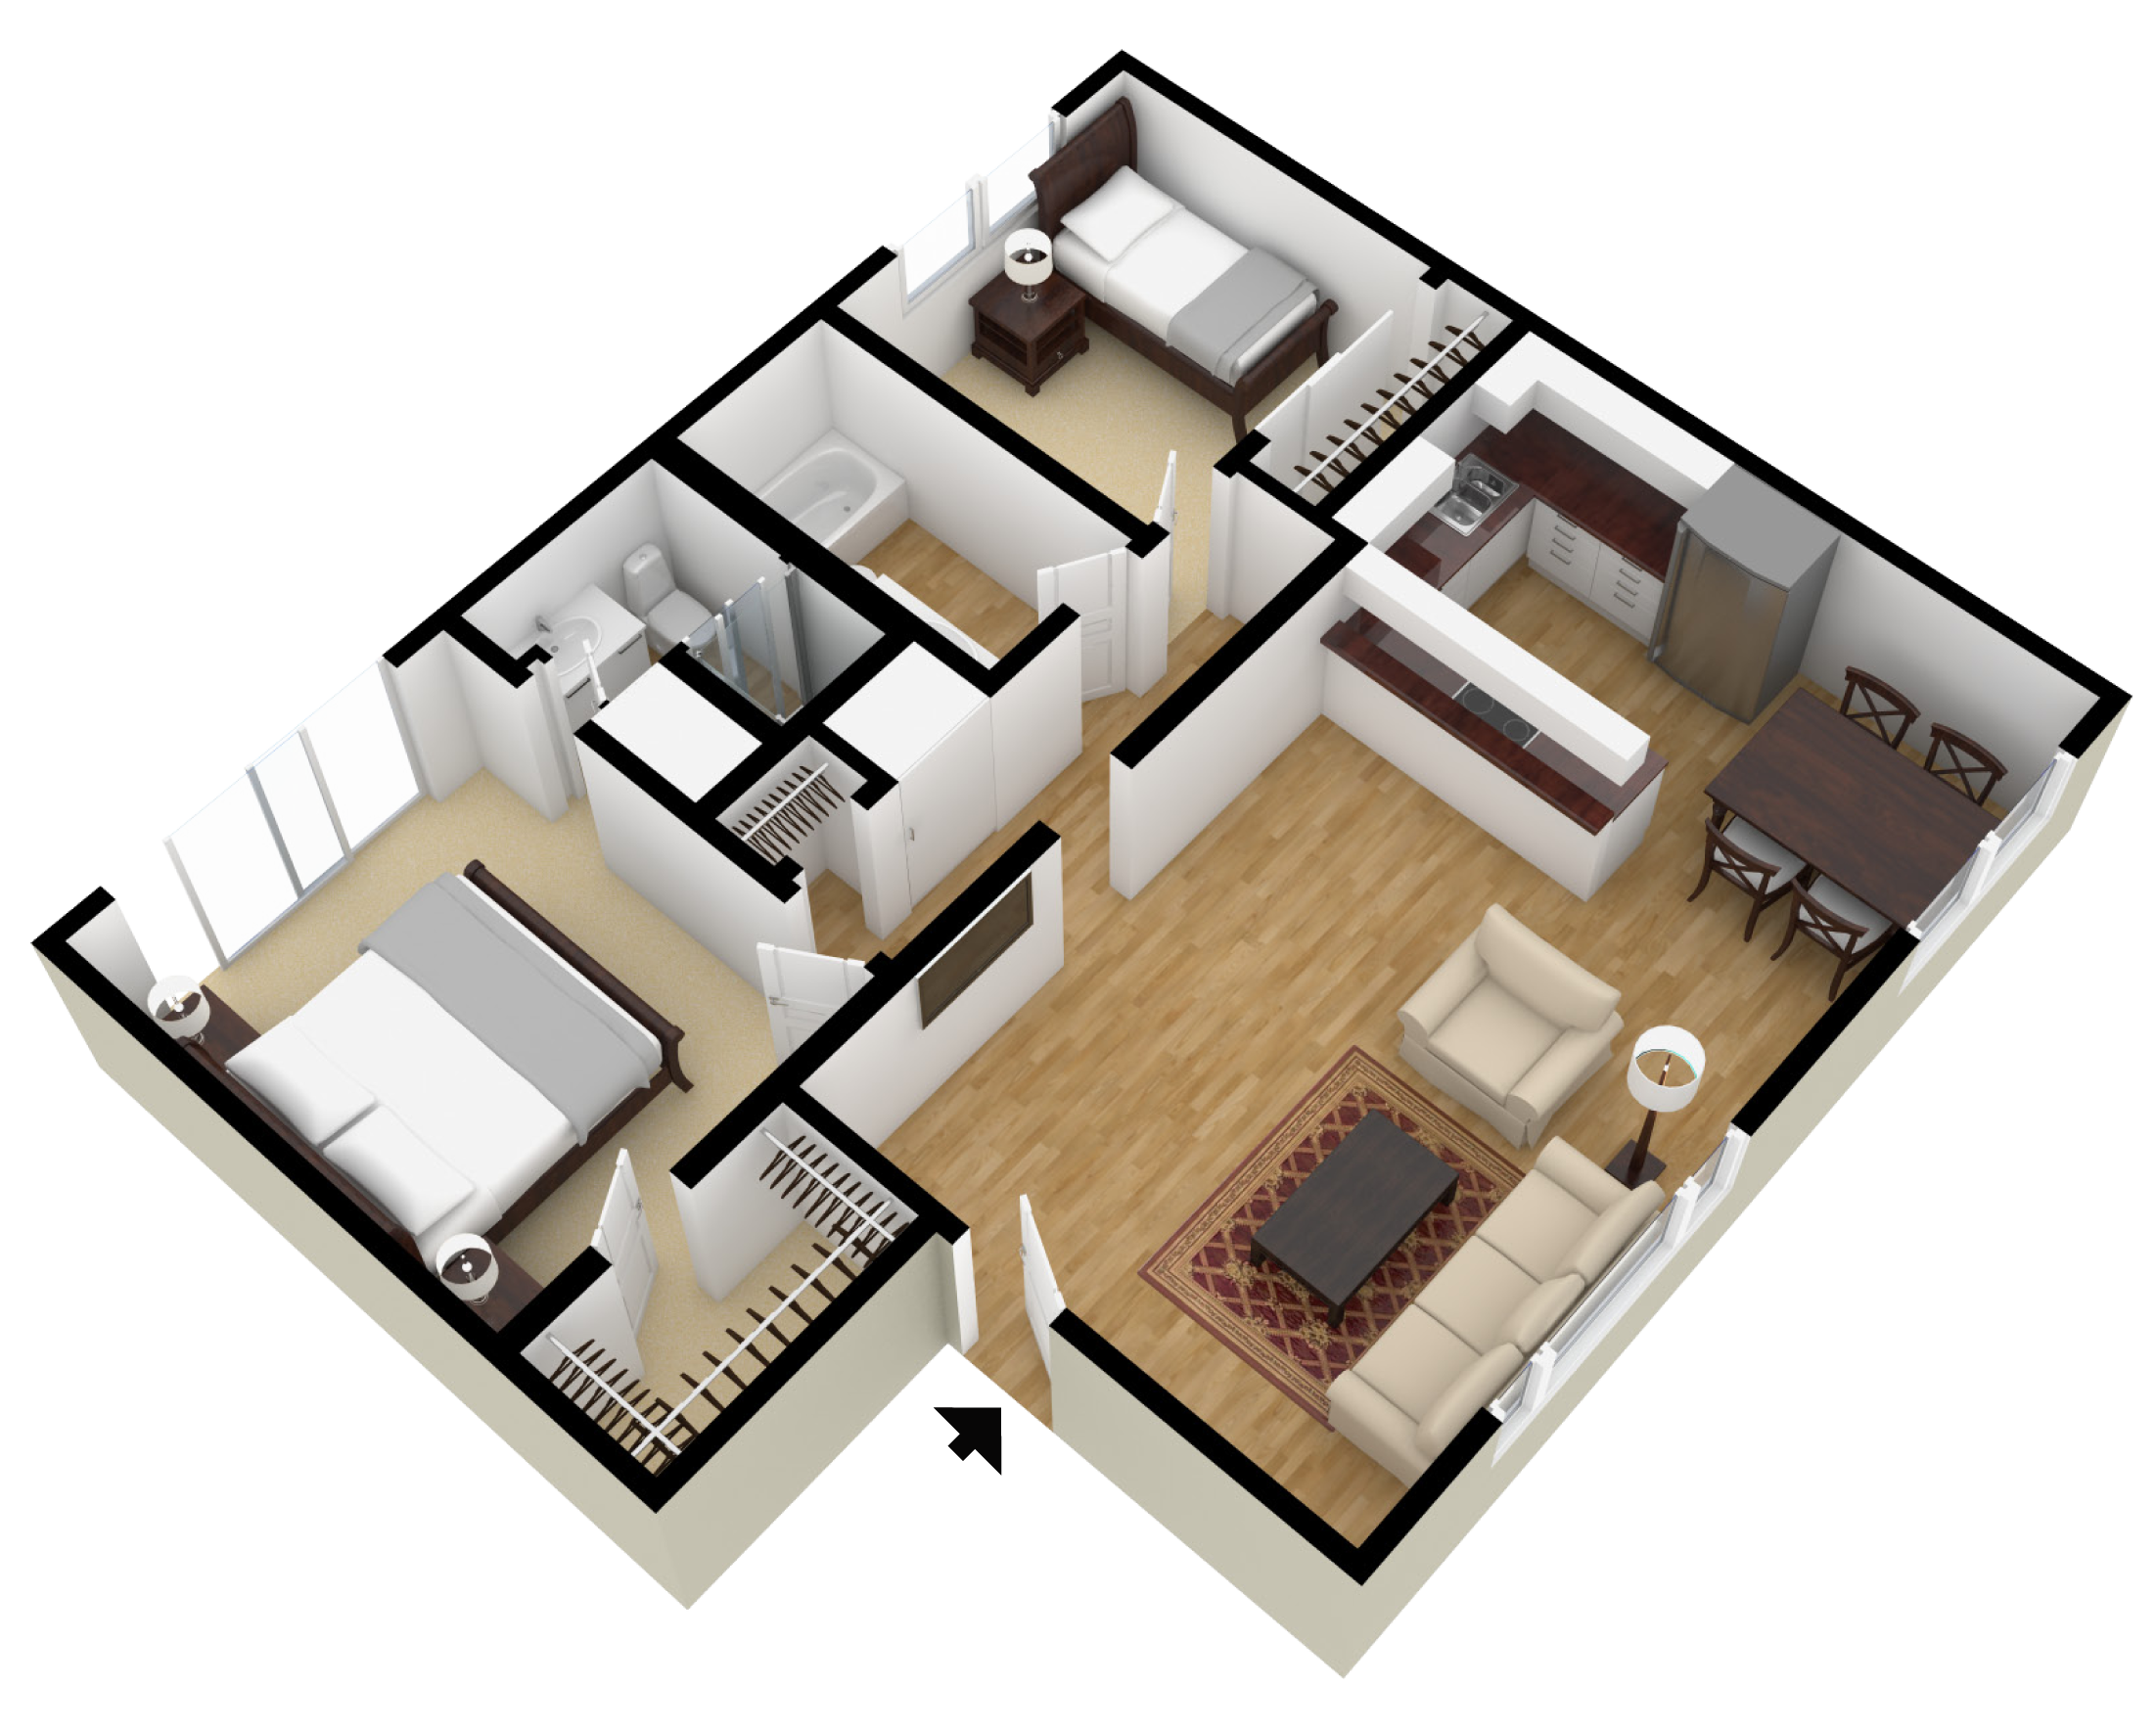 Studio 1 2 Bedroom Floor Plans